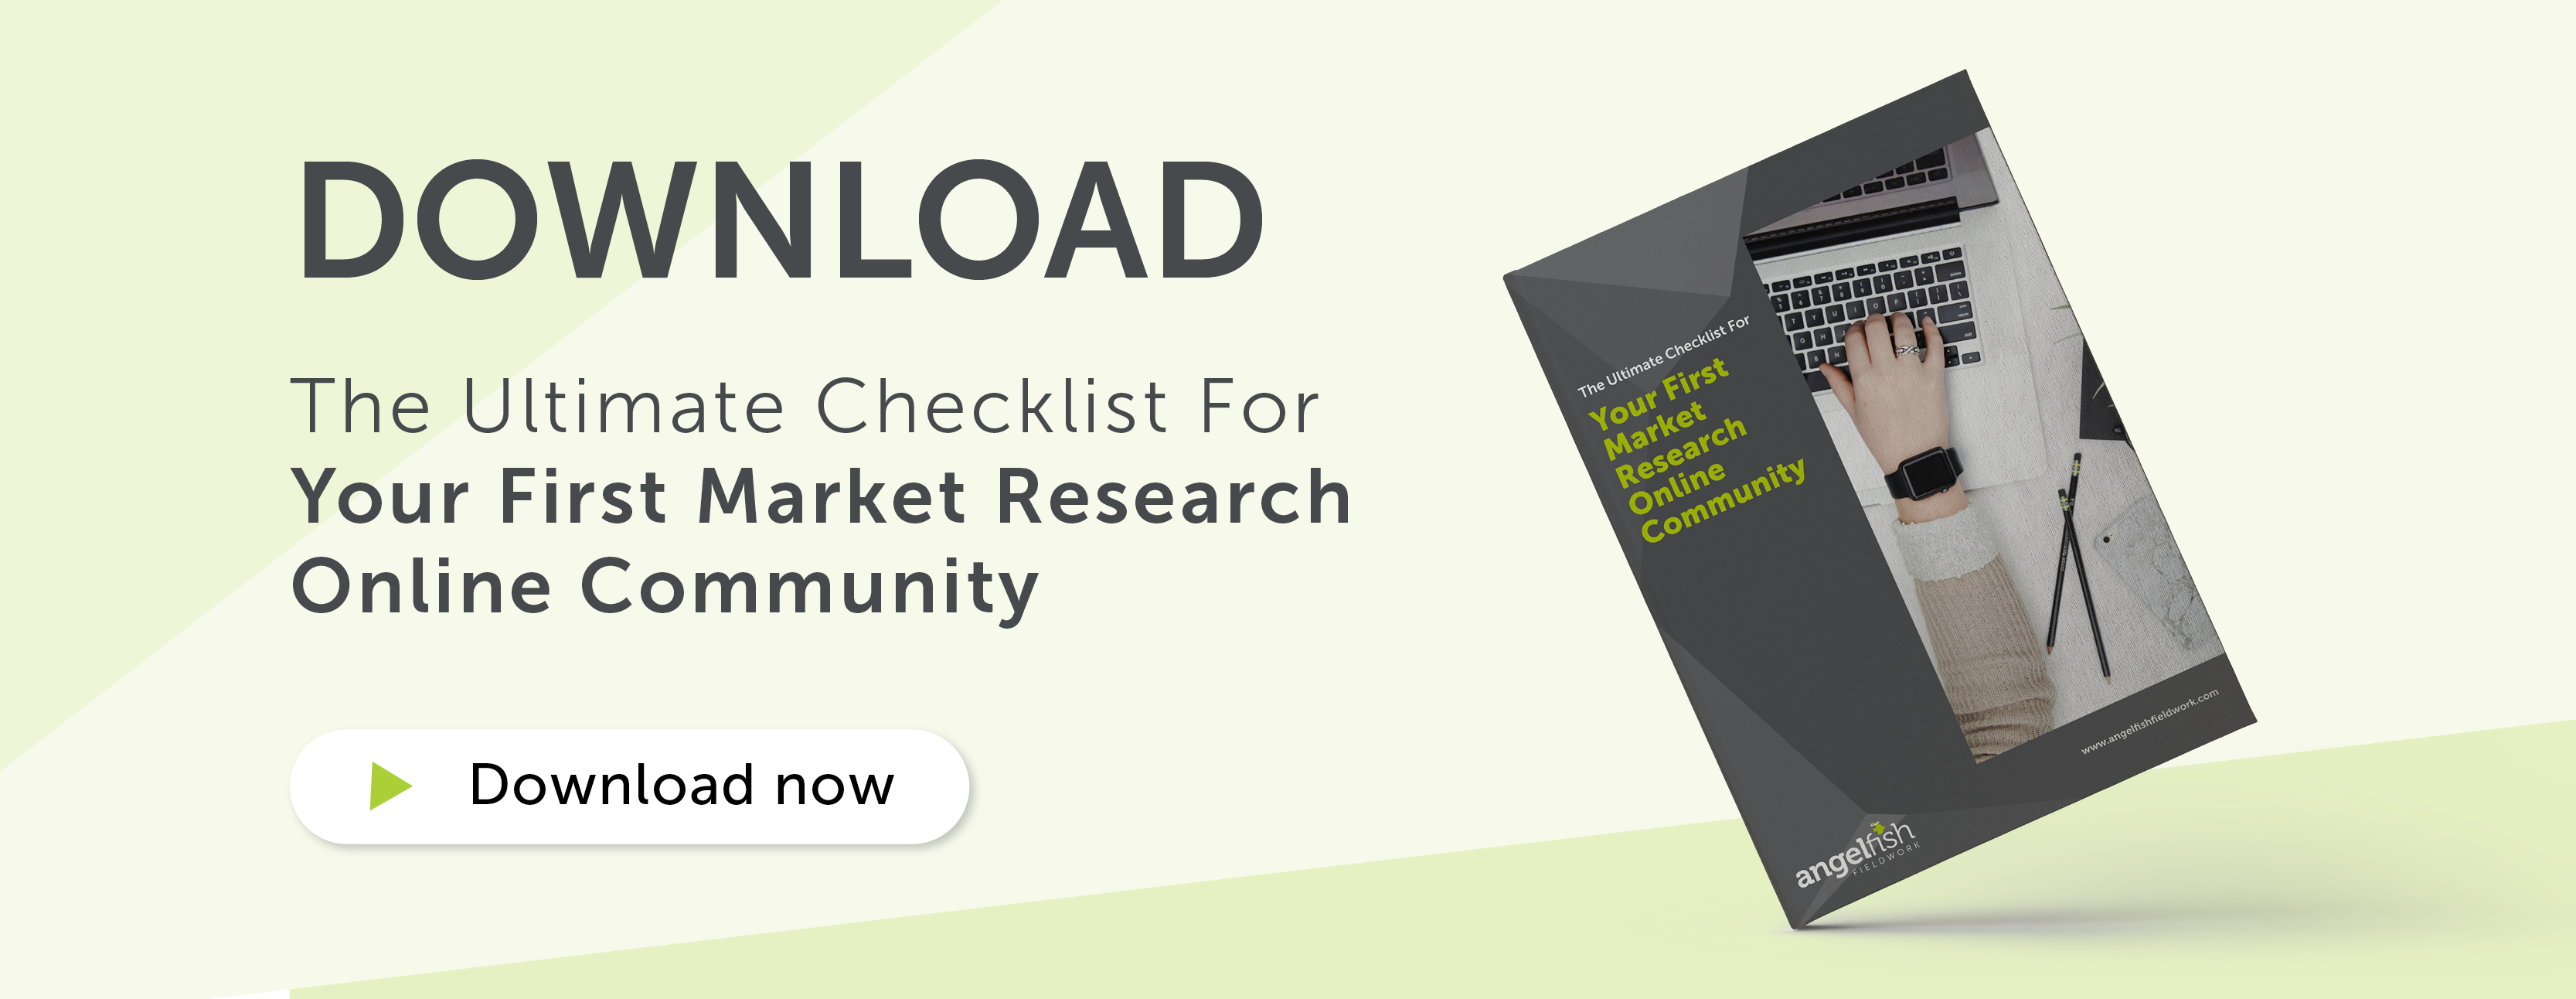 CTA Banner: The Ultimate Checklist For Your First Market Research Online Community